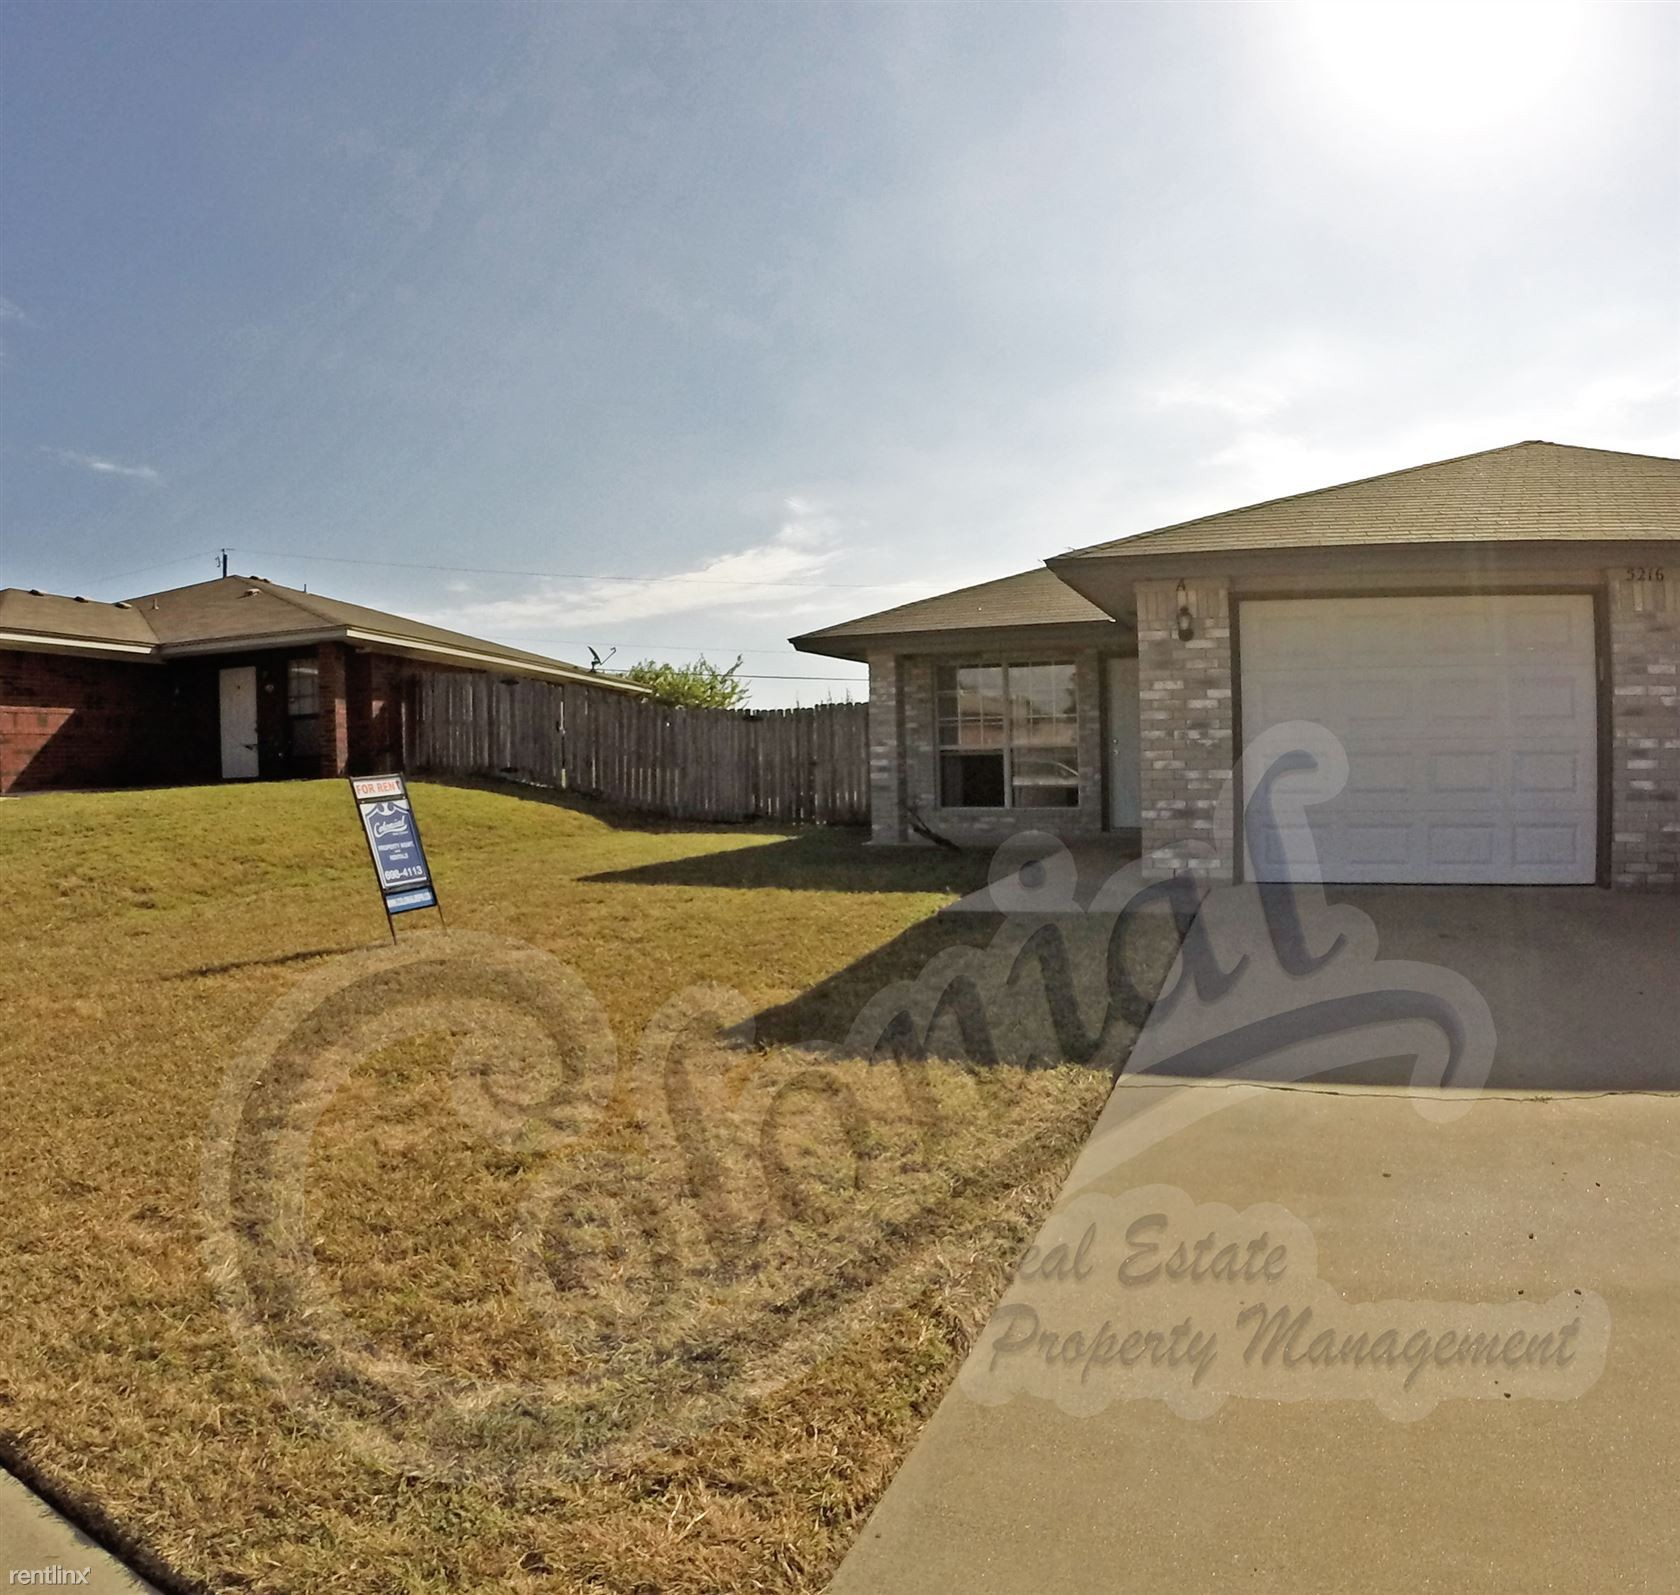 Apartments In Killeen Tx: 5109 Shawn Dr, Killeen, TX 76542